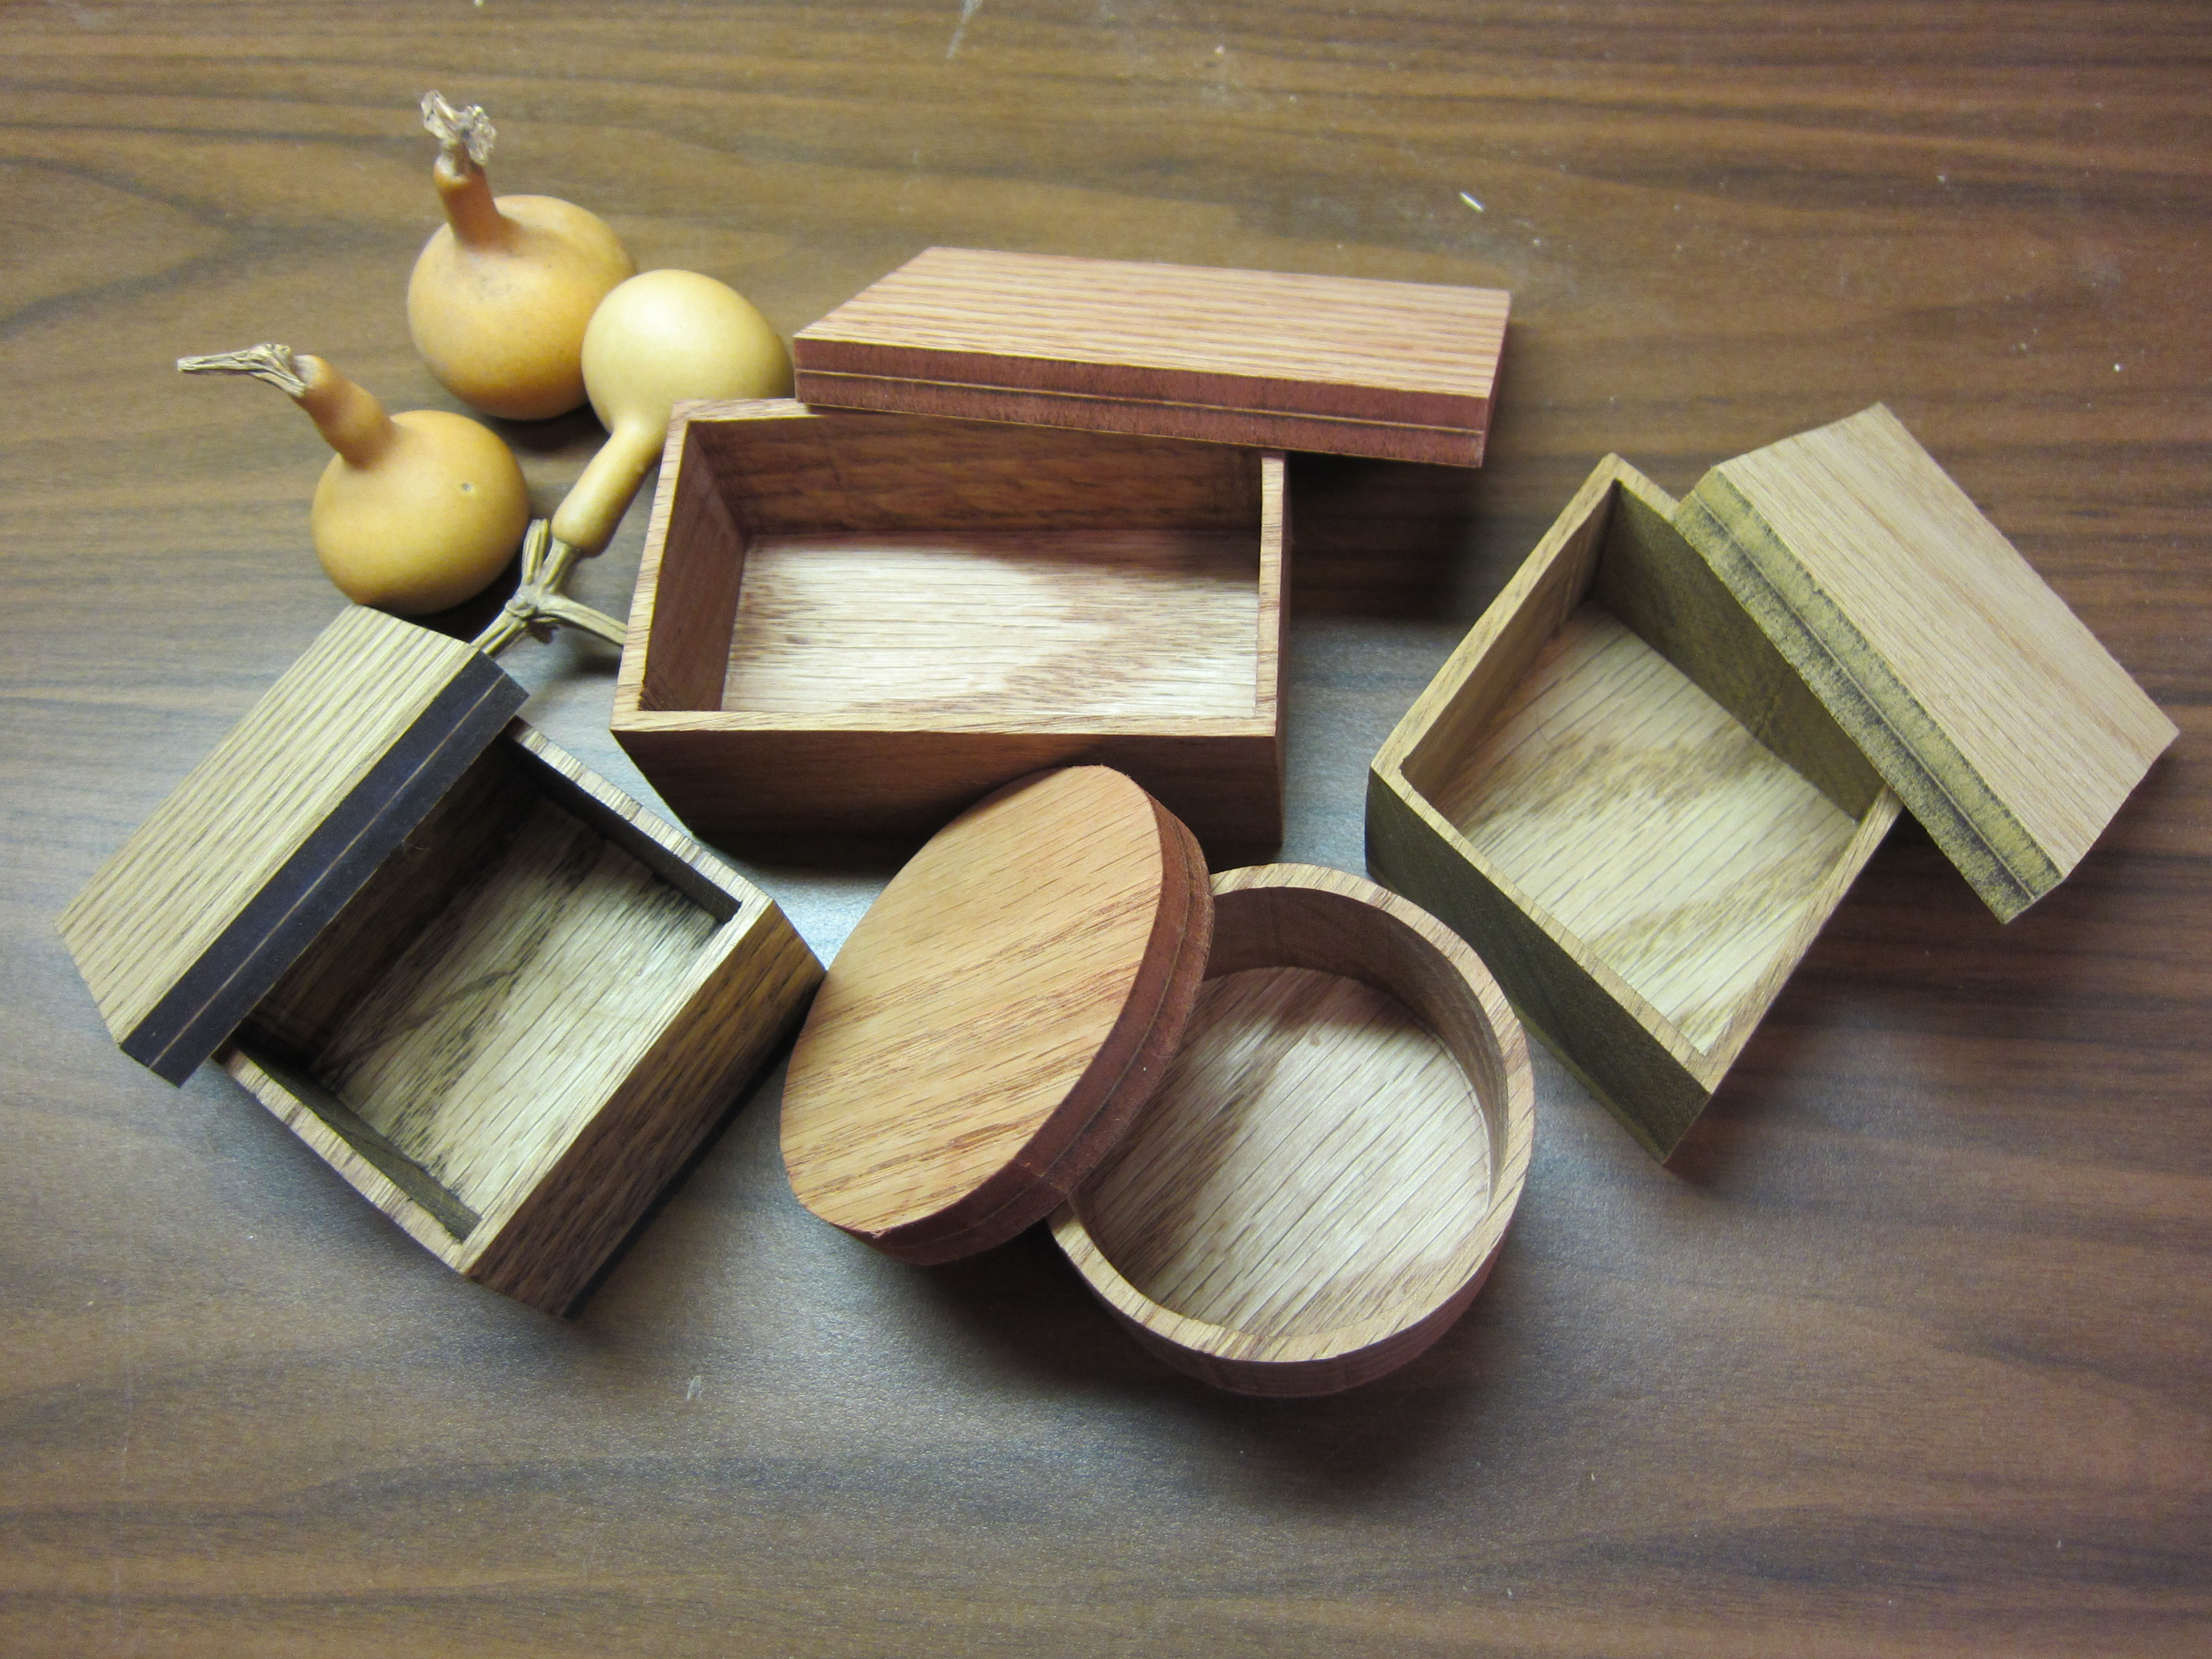 scroll saw projects Cherokee wood products produces scroll saw wood and thin wood boards for crafts in 1/8, 1/4, 1/2 & 3/4 in a range of widths, defect free hobby wood.